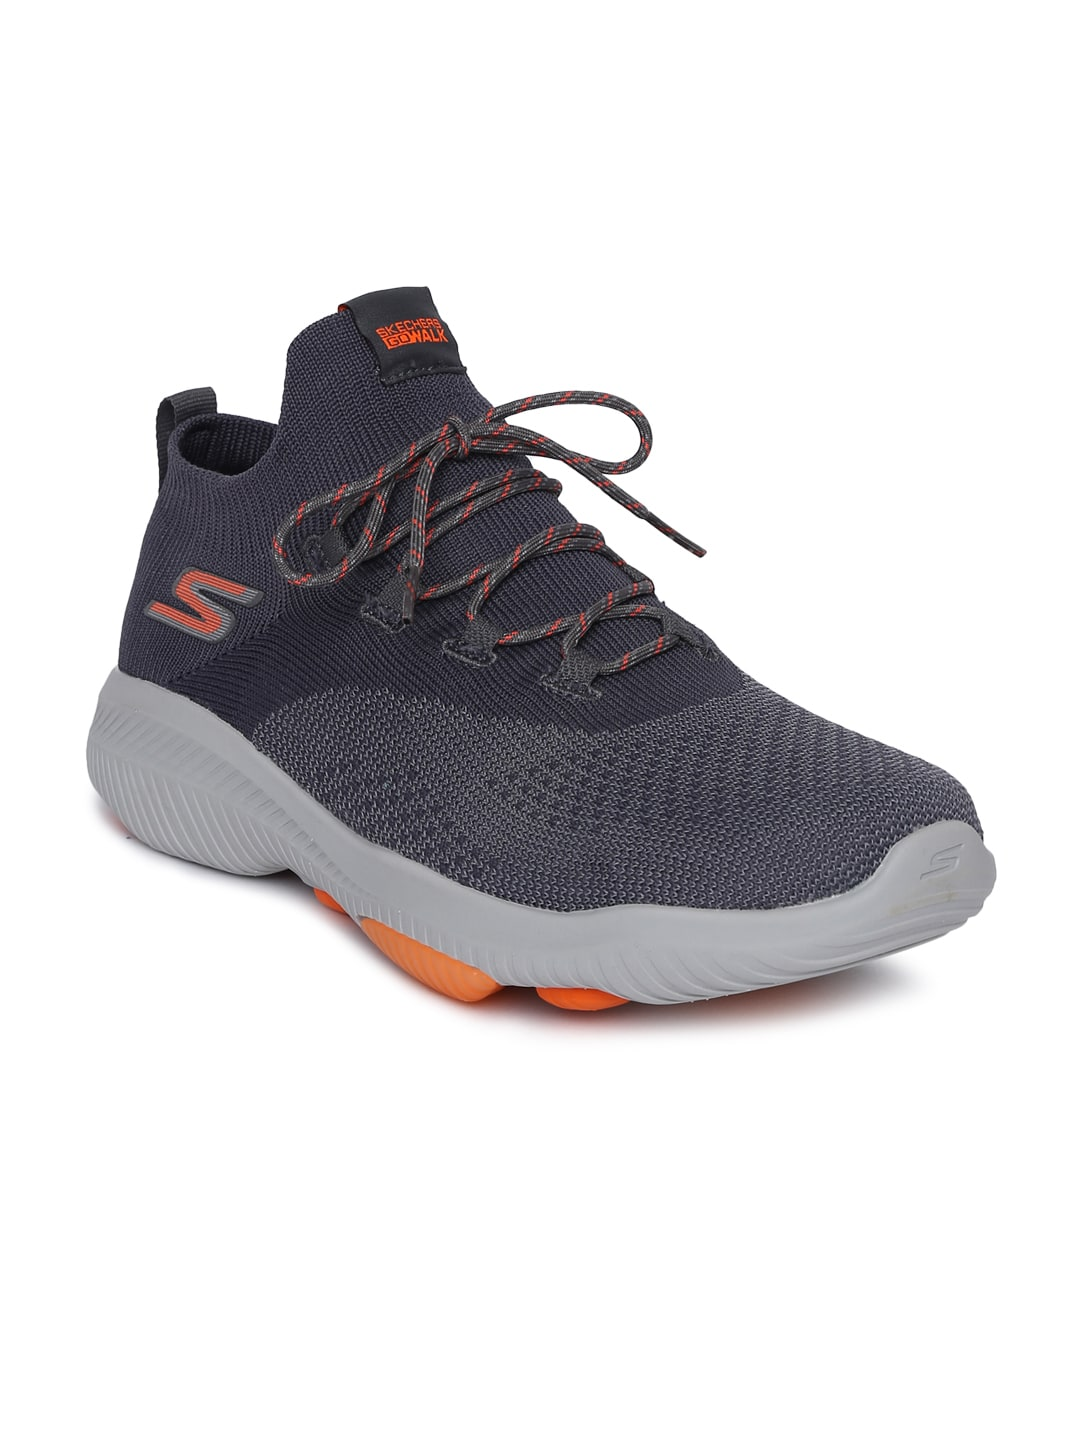 98526c3a1e06 Skechers Sports Shoes Jackets - Buy Skechers Sports Shoes Jackets online in  India